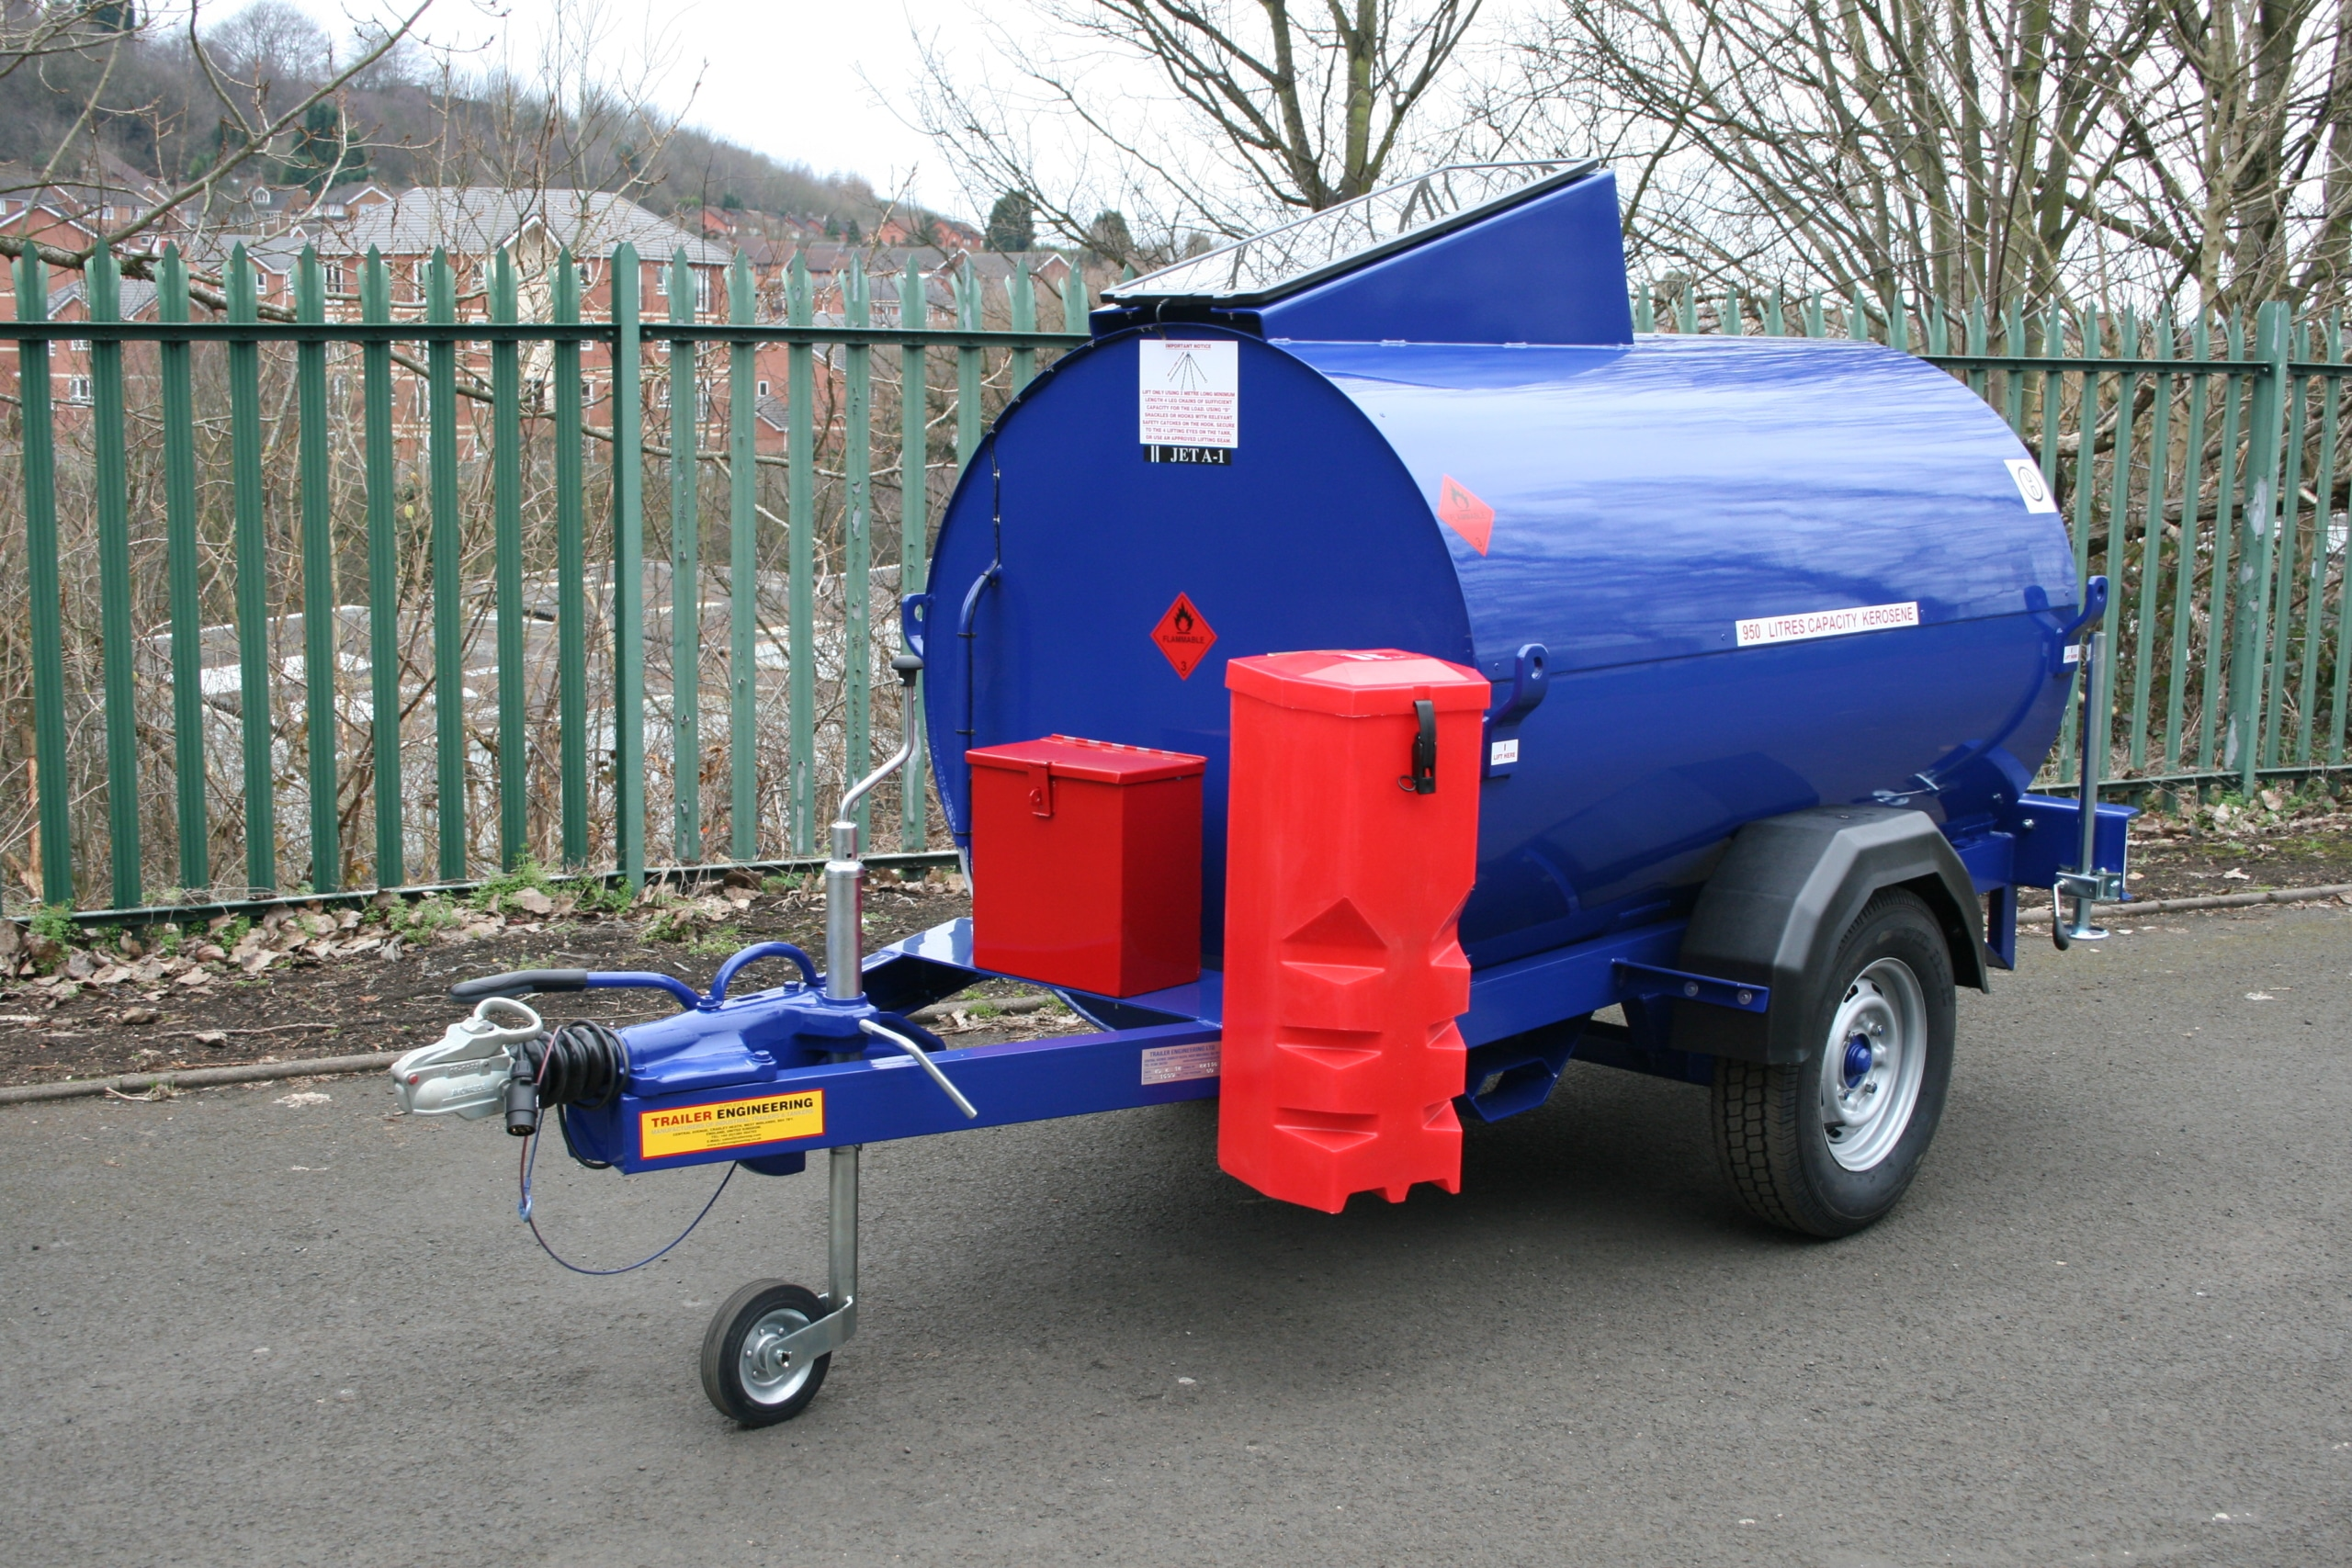 JetA1 fuel trailer with solar panels